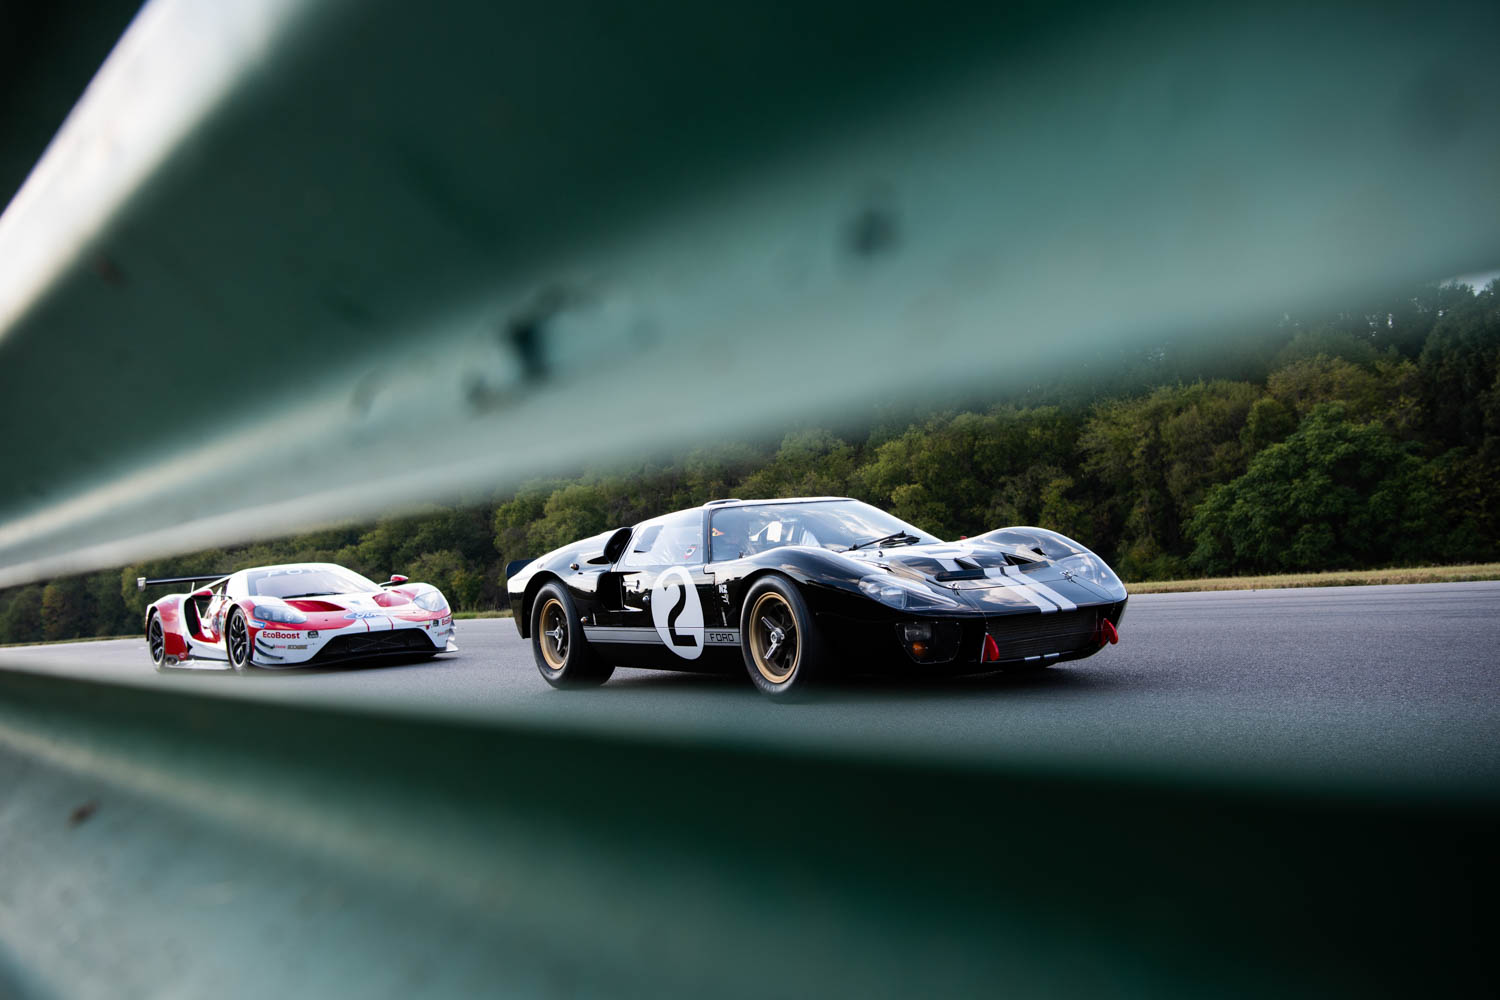 More than 50 years of aerodynamic knowledge separates these two racers. The modern car expertly channels the air, whereas the GT40 fights high-speed lift.